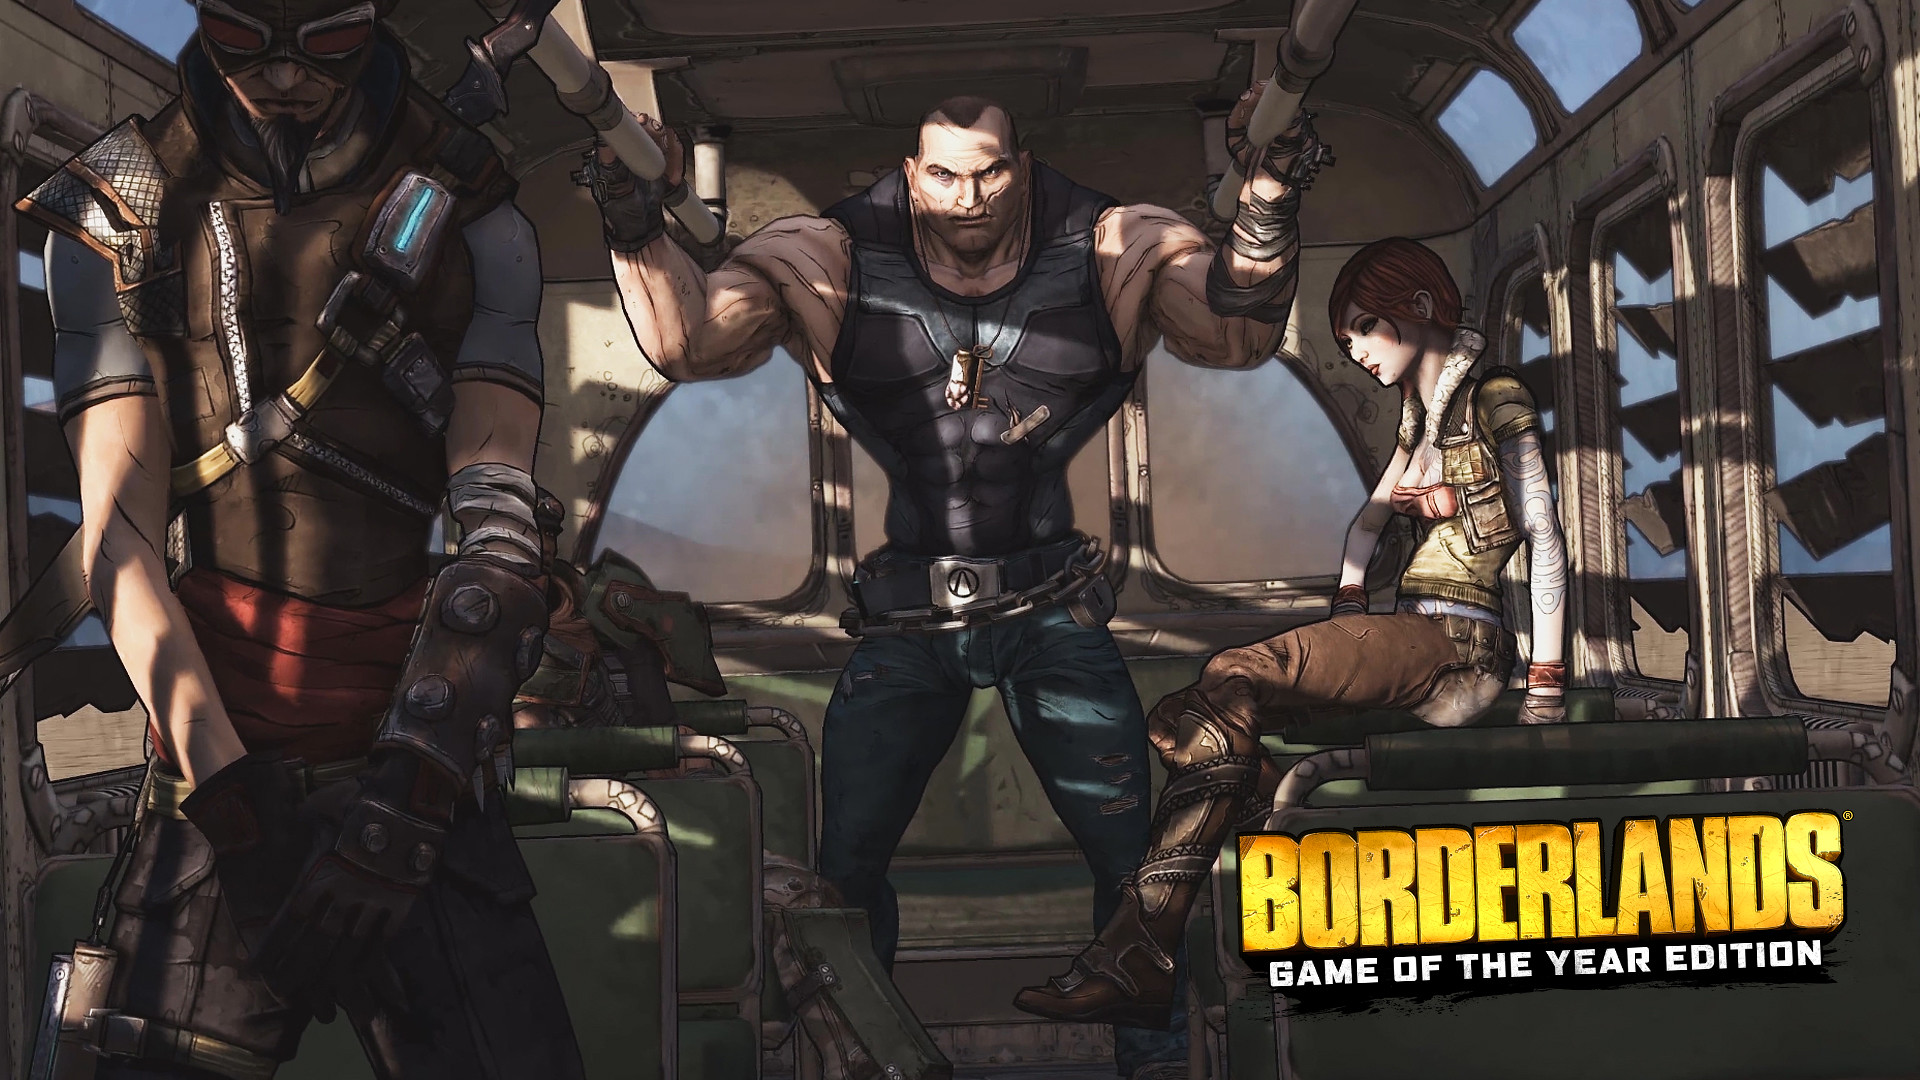 Borderlands 3 Game of the Year Poster